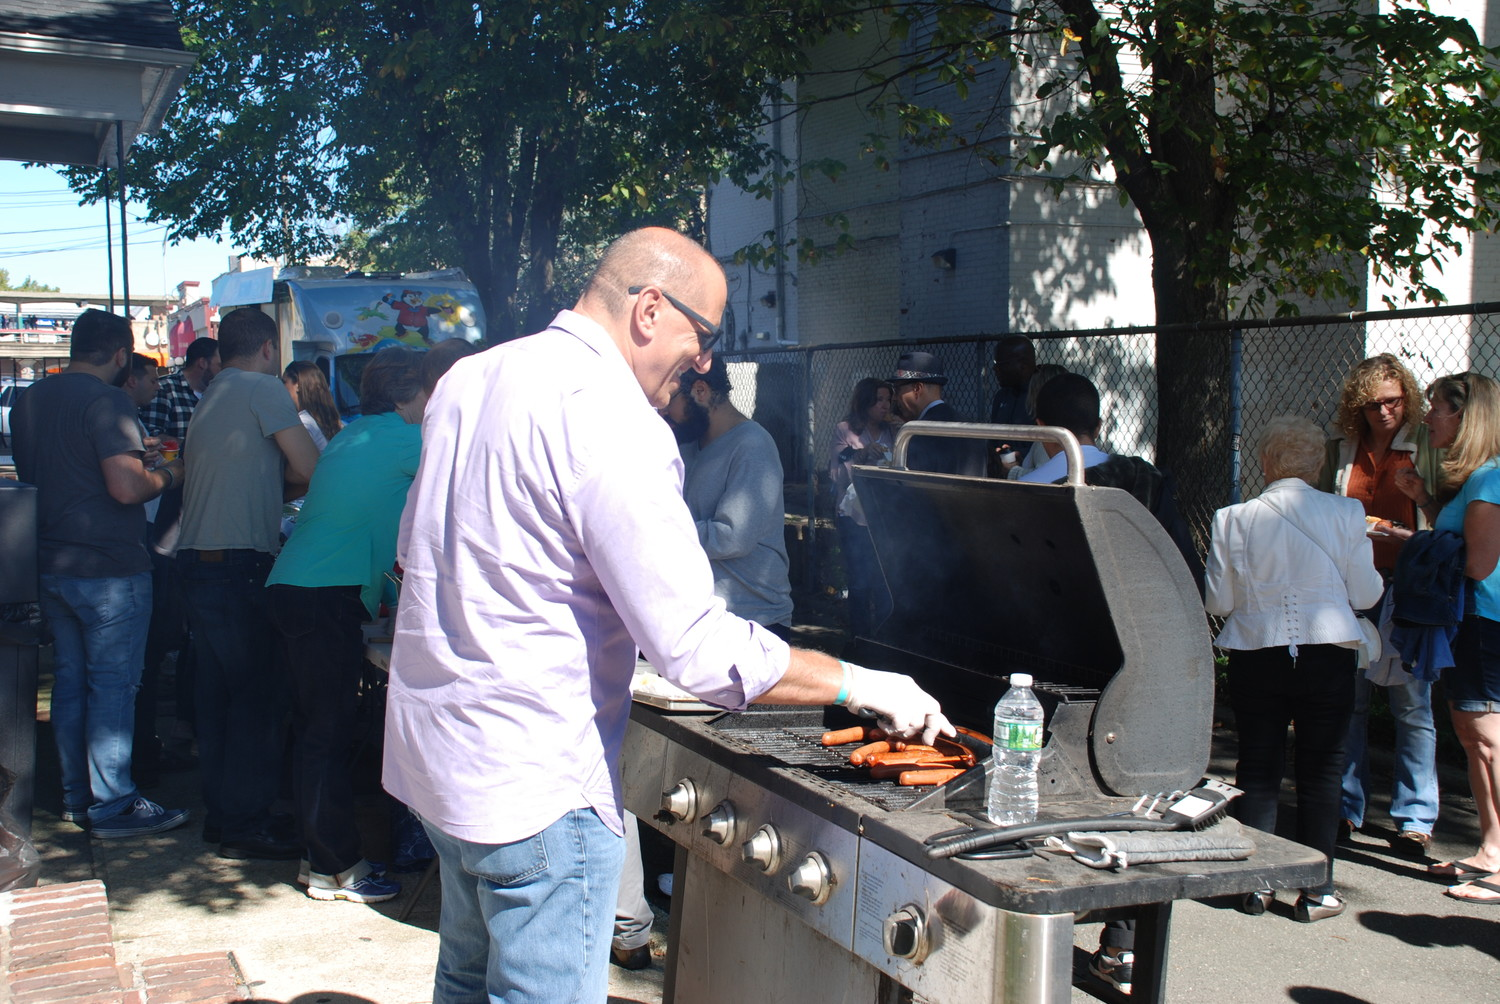 Peter LaRocco, of the Vineyard's prayer ministry, flips hot dogs for the re-launch party-goers.